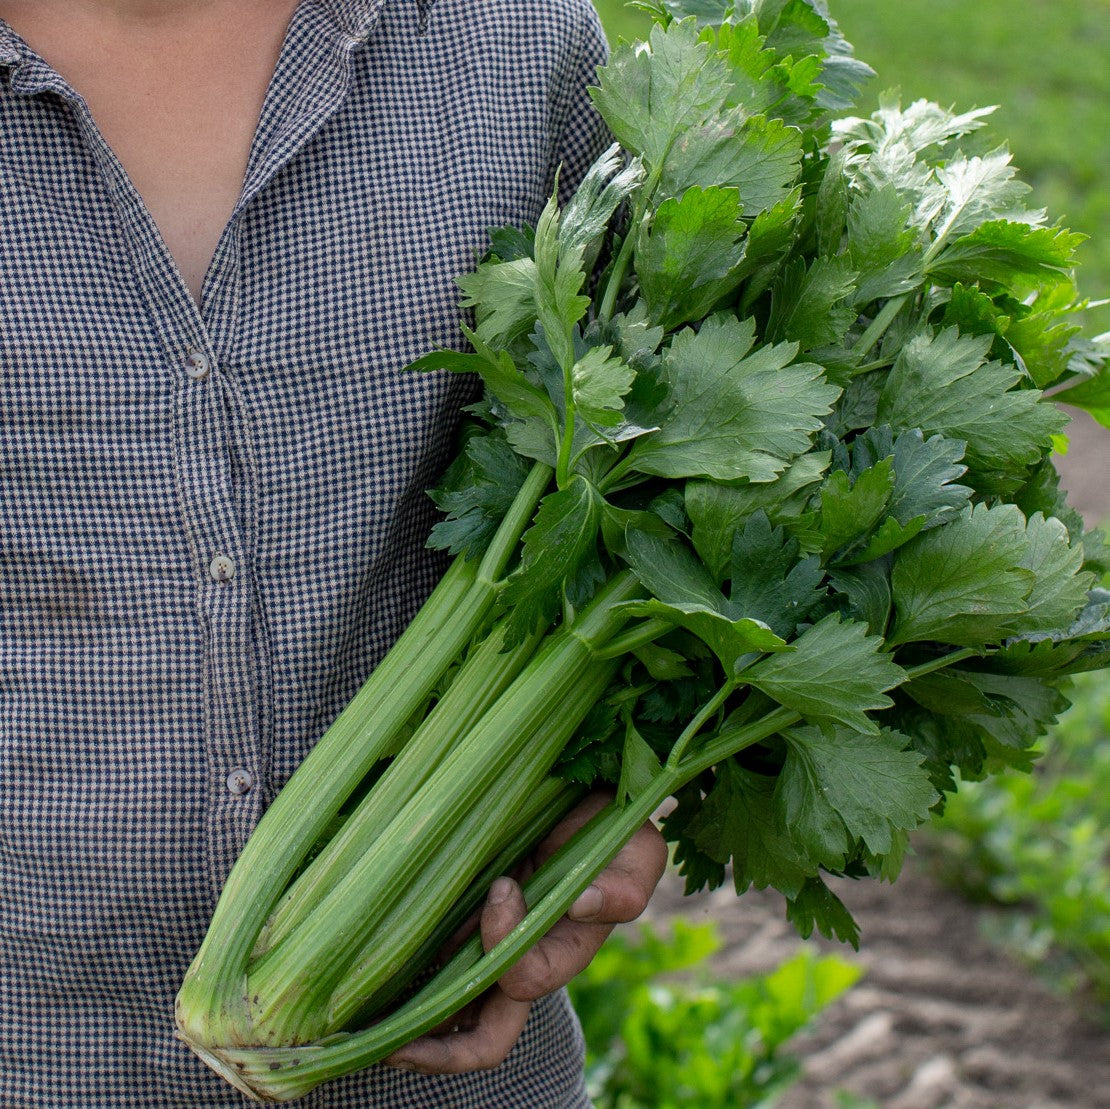 Organic celery - Untaned Earth